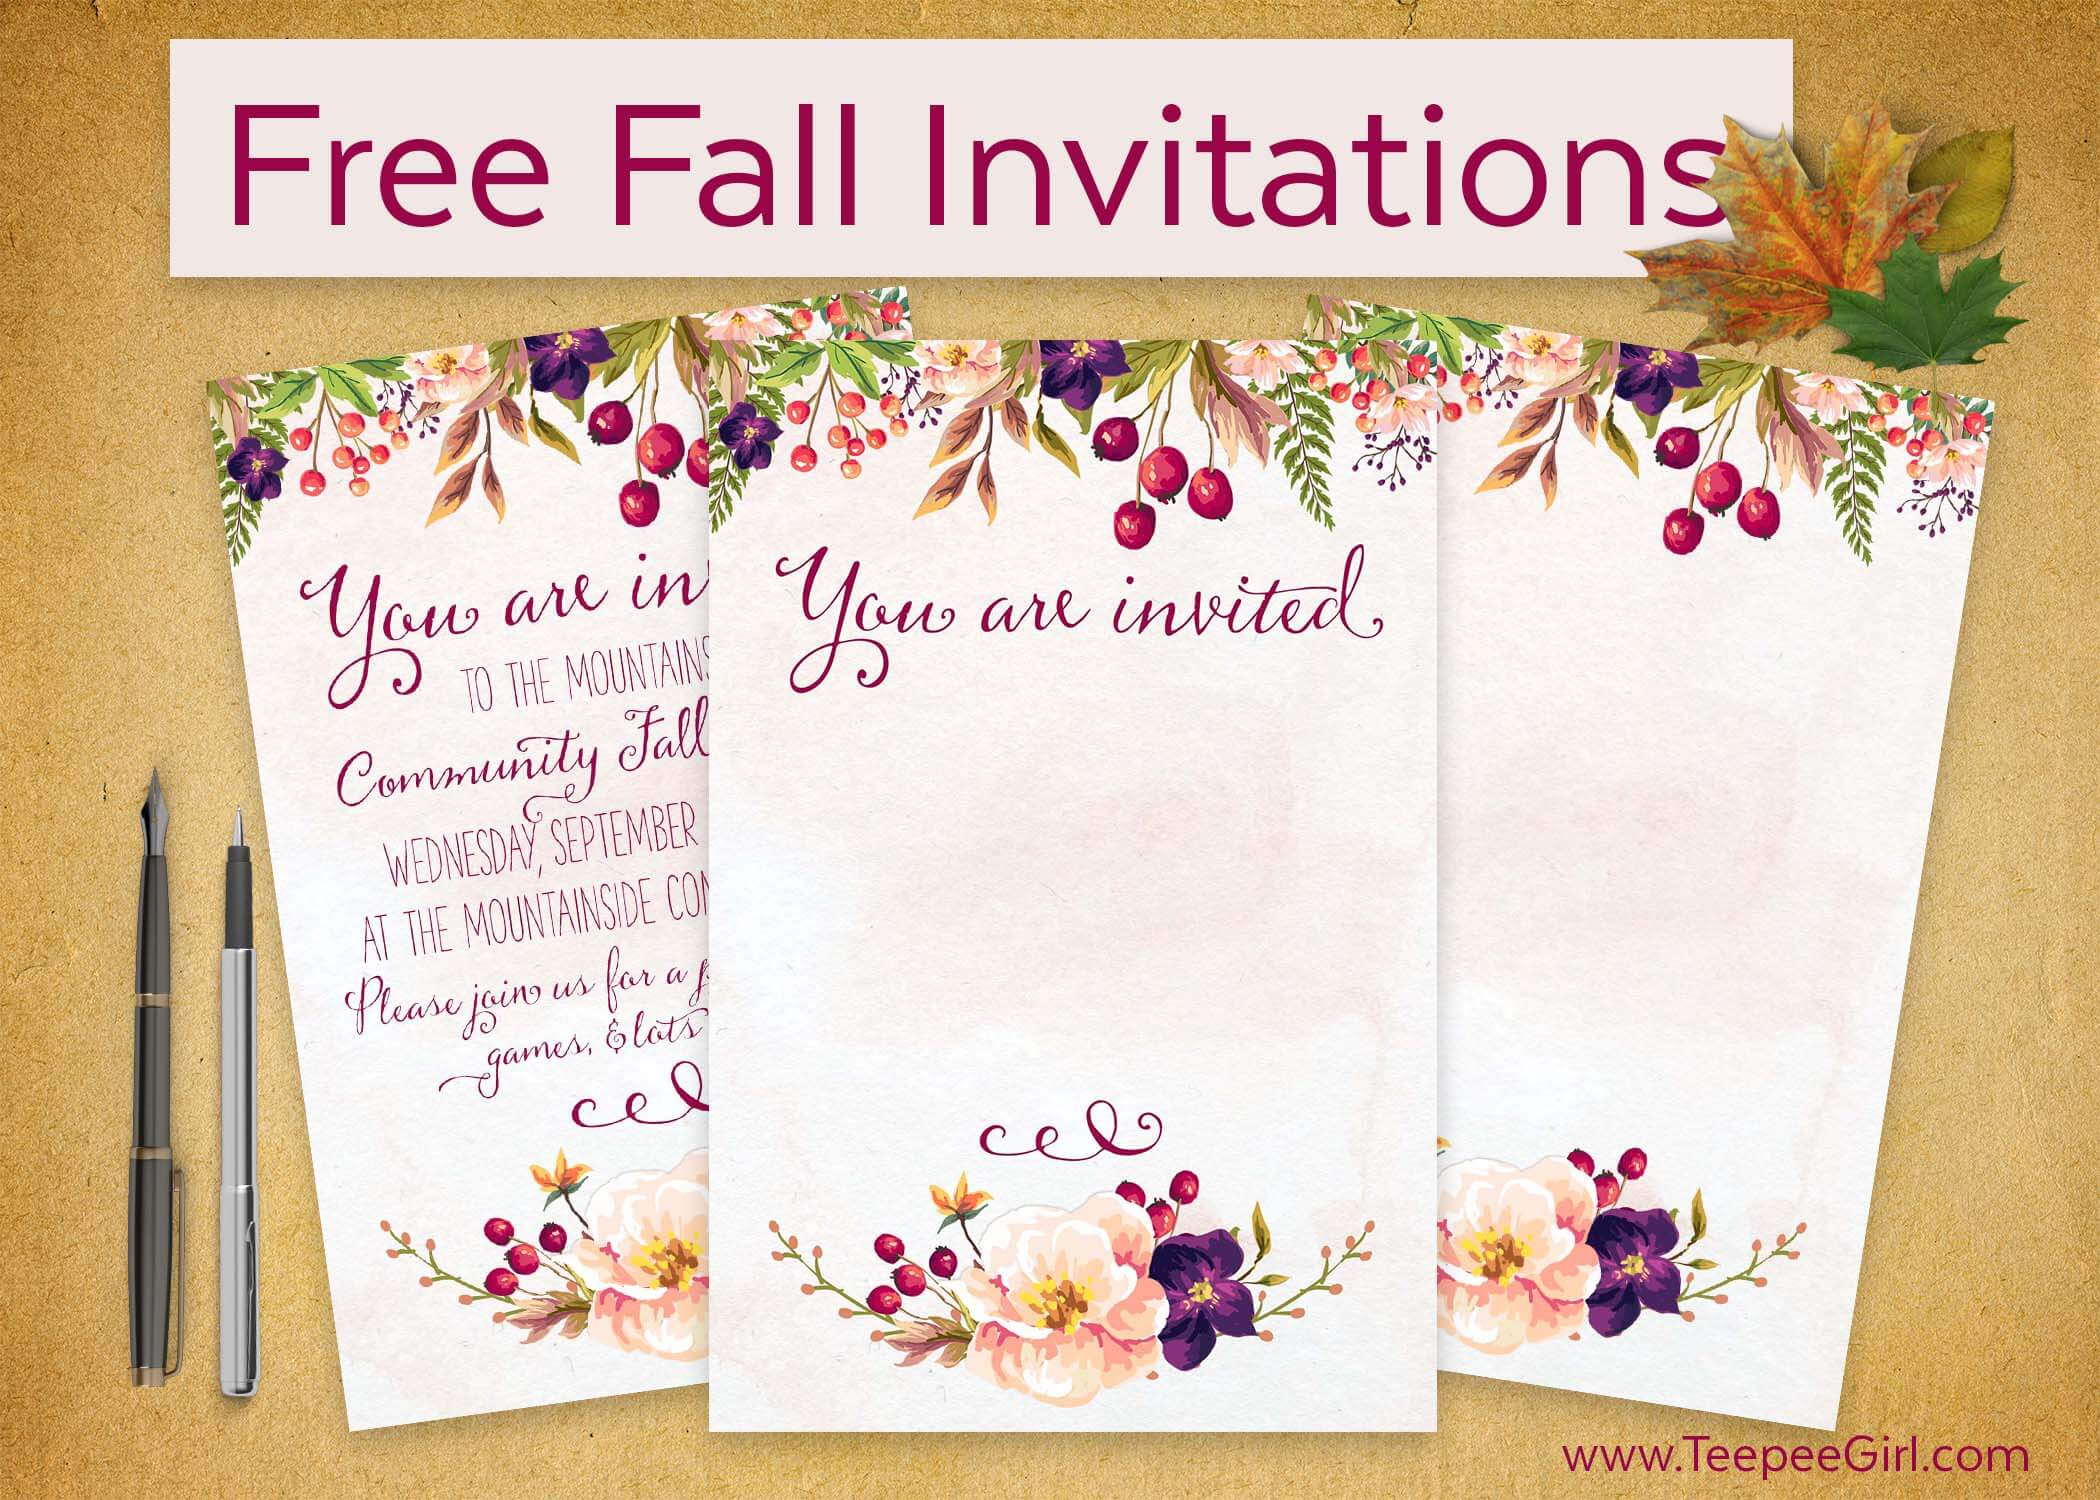 Free Fall Invitations